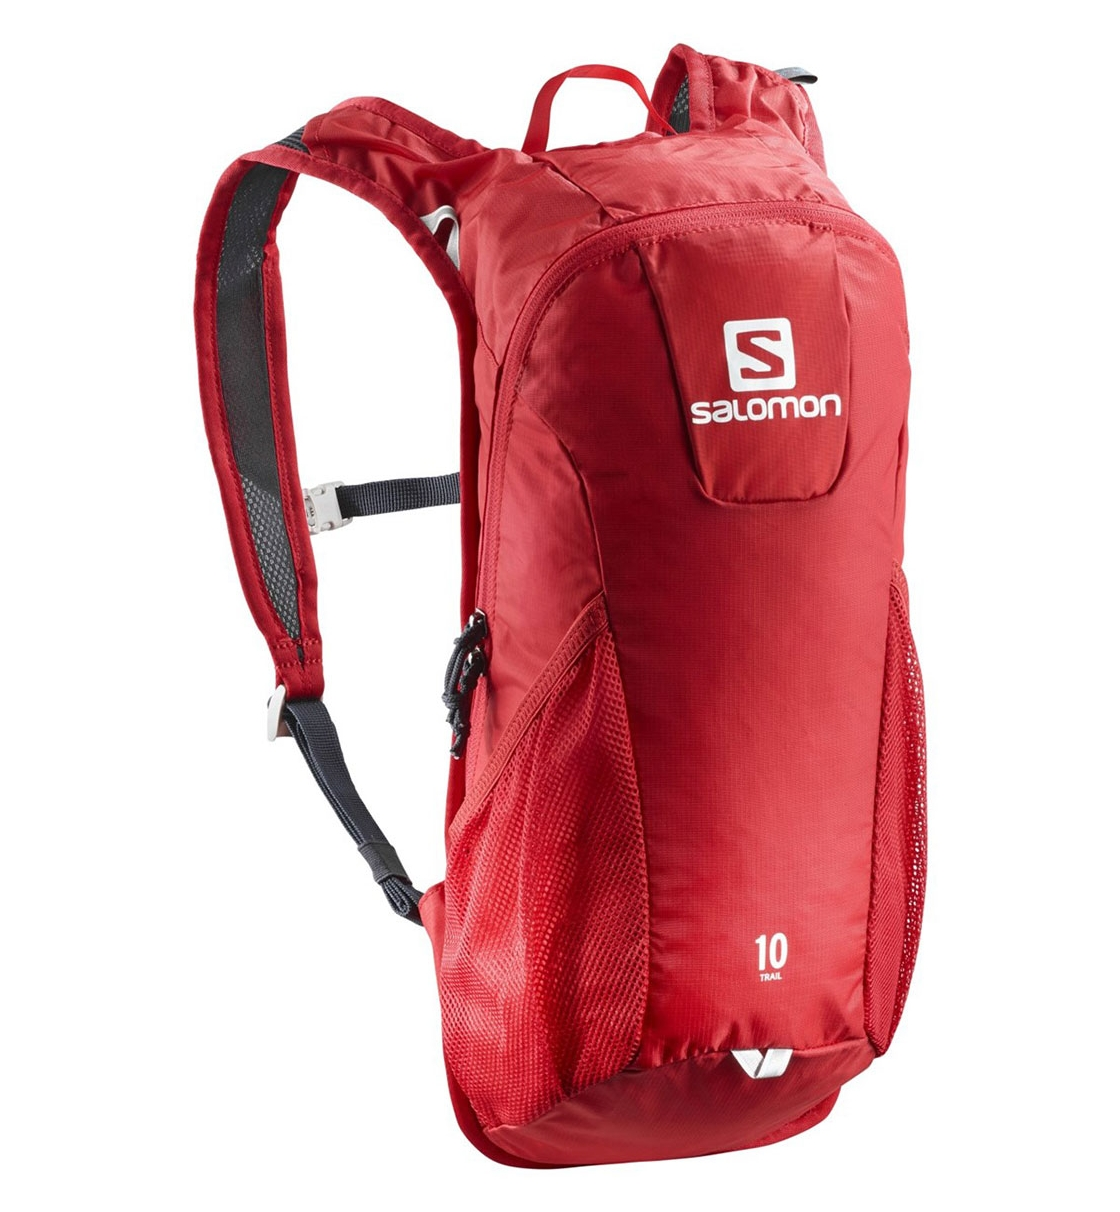 Salomon Σακίδιο Πλάτης N Fw18 Bag Trail 10 Barbados 401343